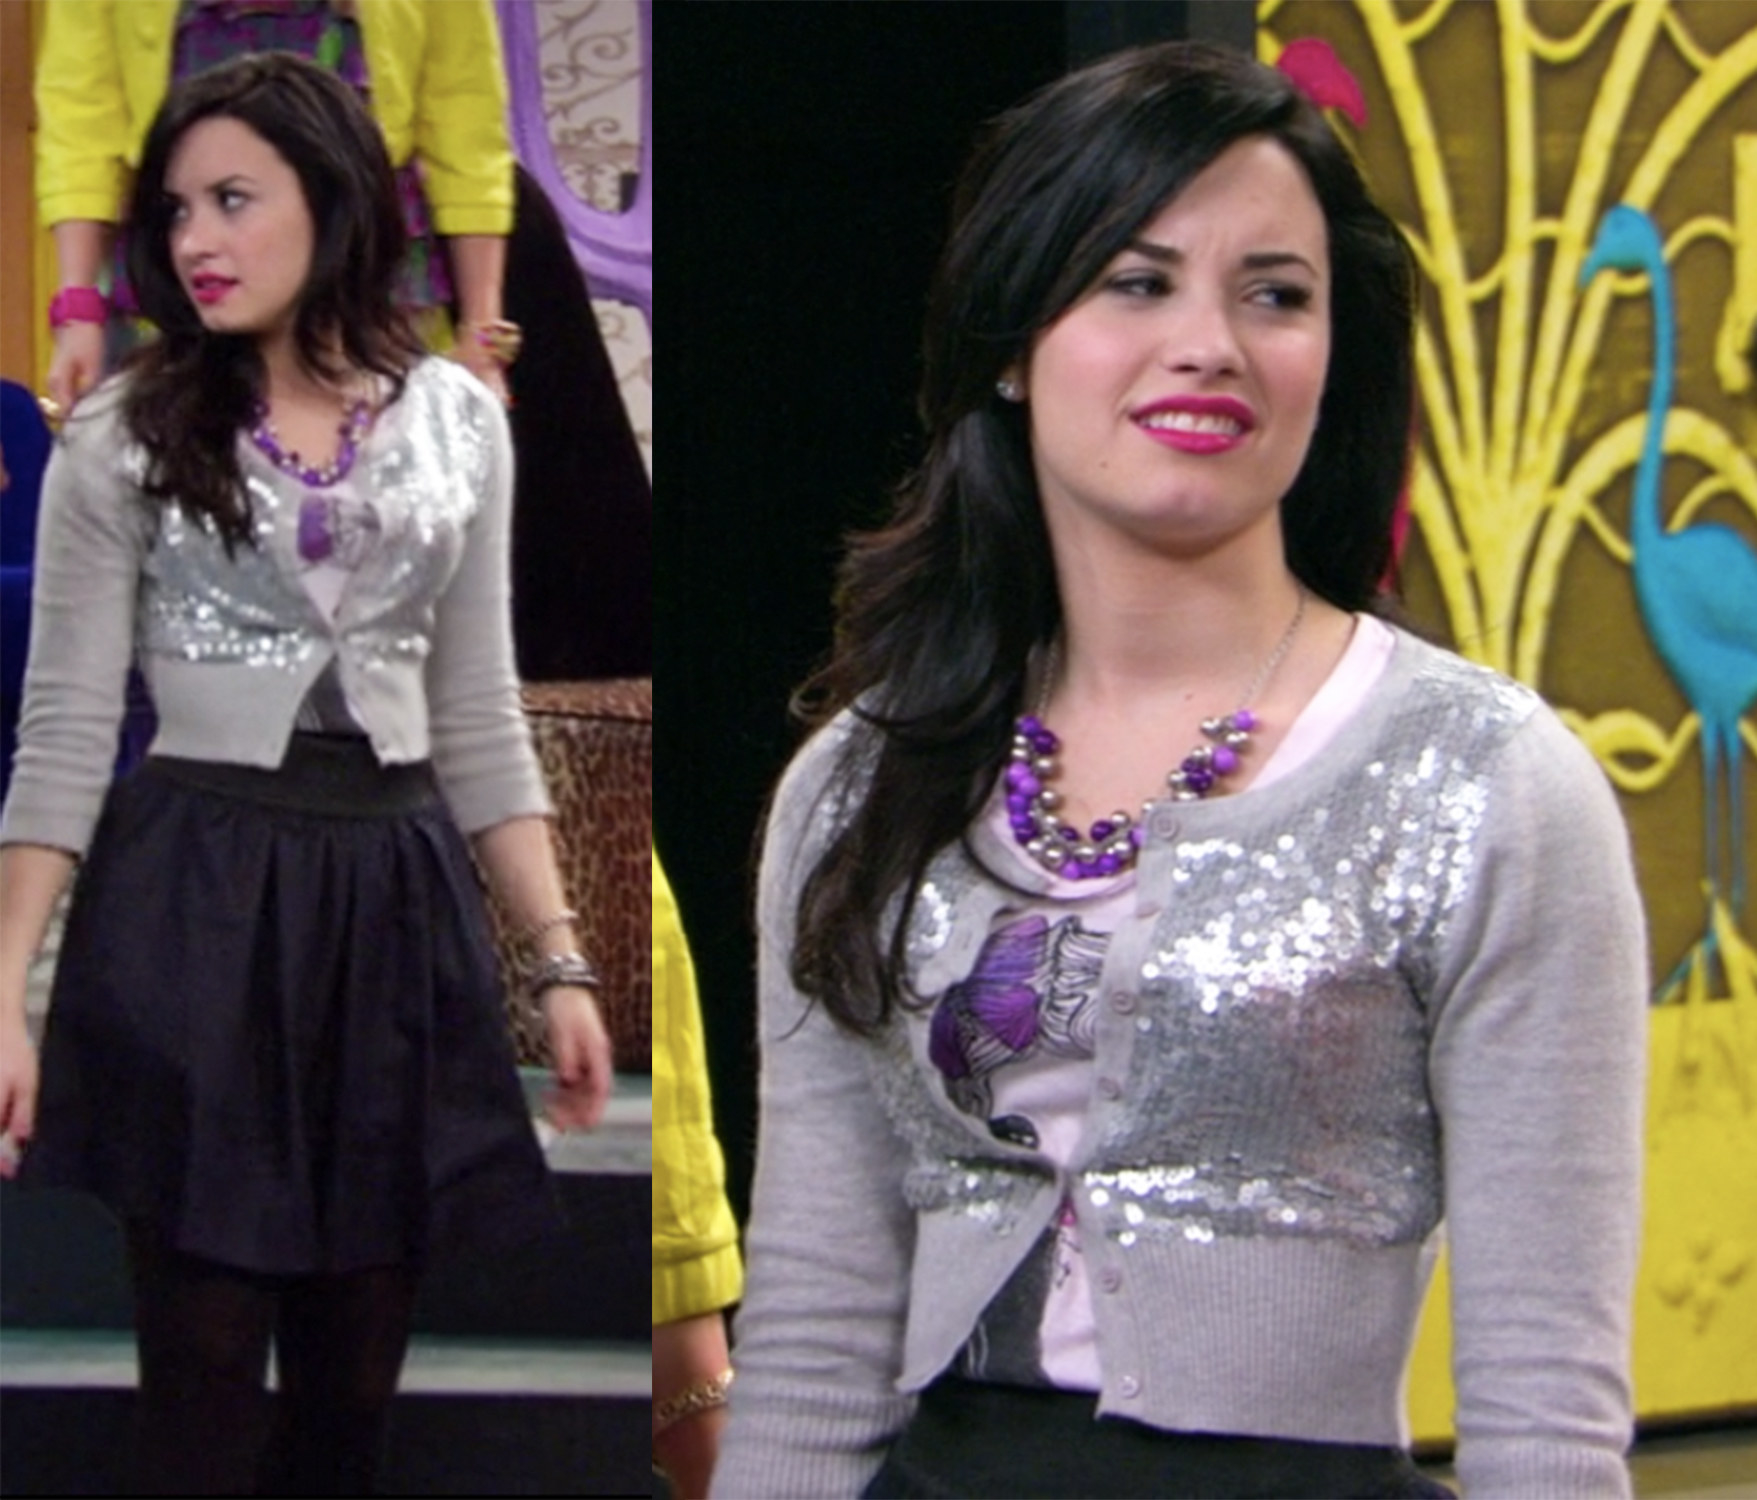 Sonny has a sequined crop sweater and an puffy skirt